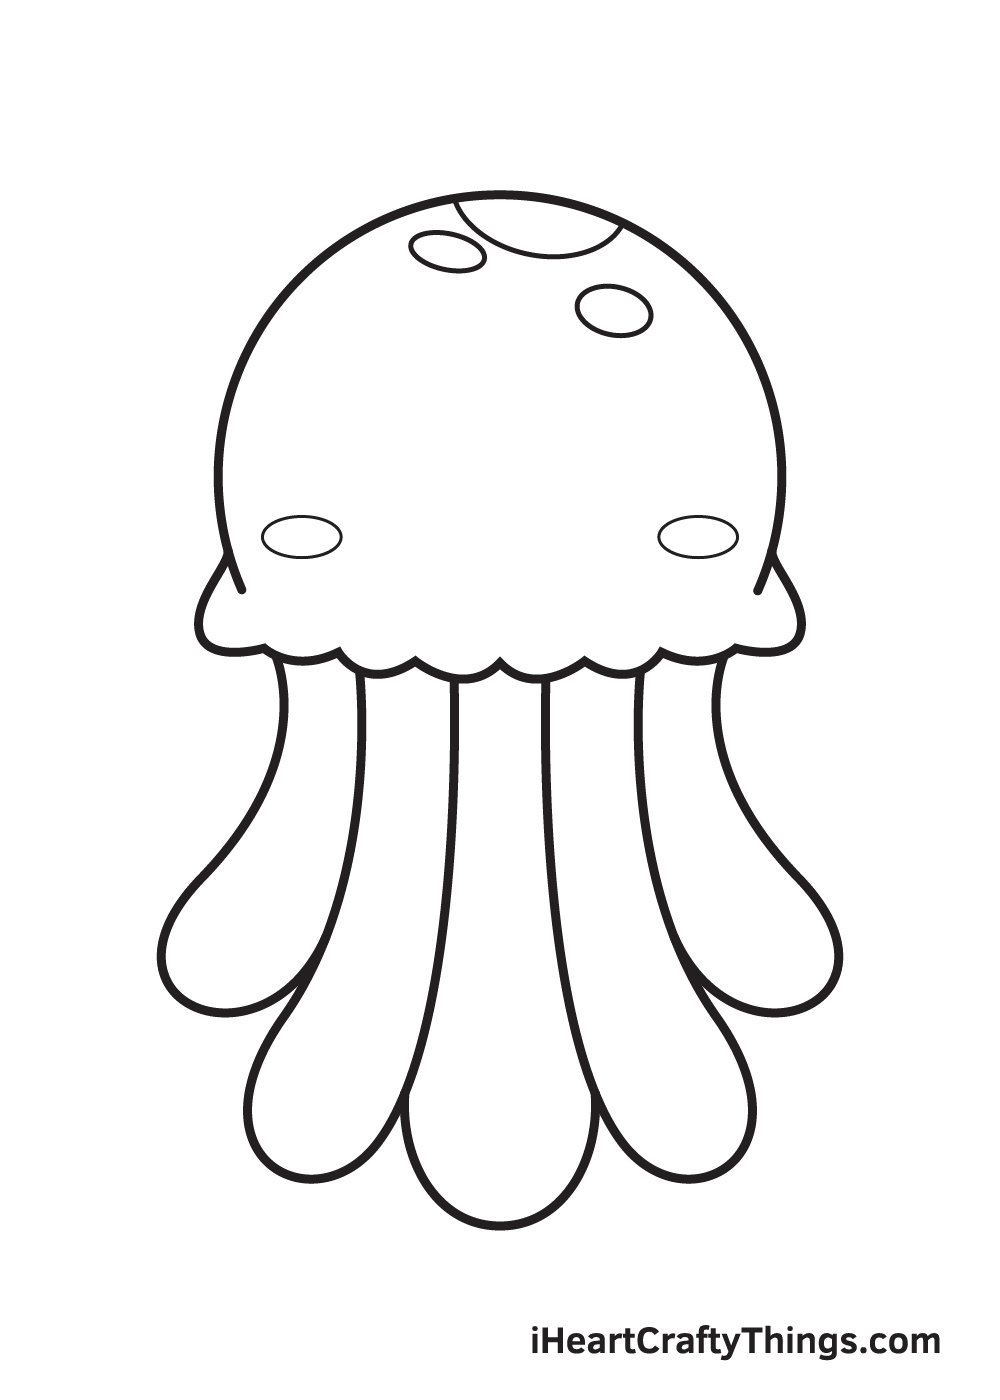 jellyfish drawing step 8